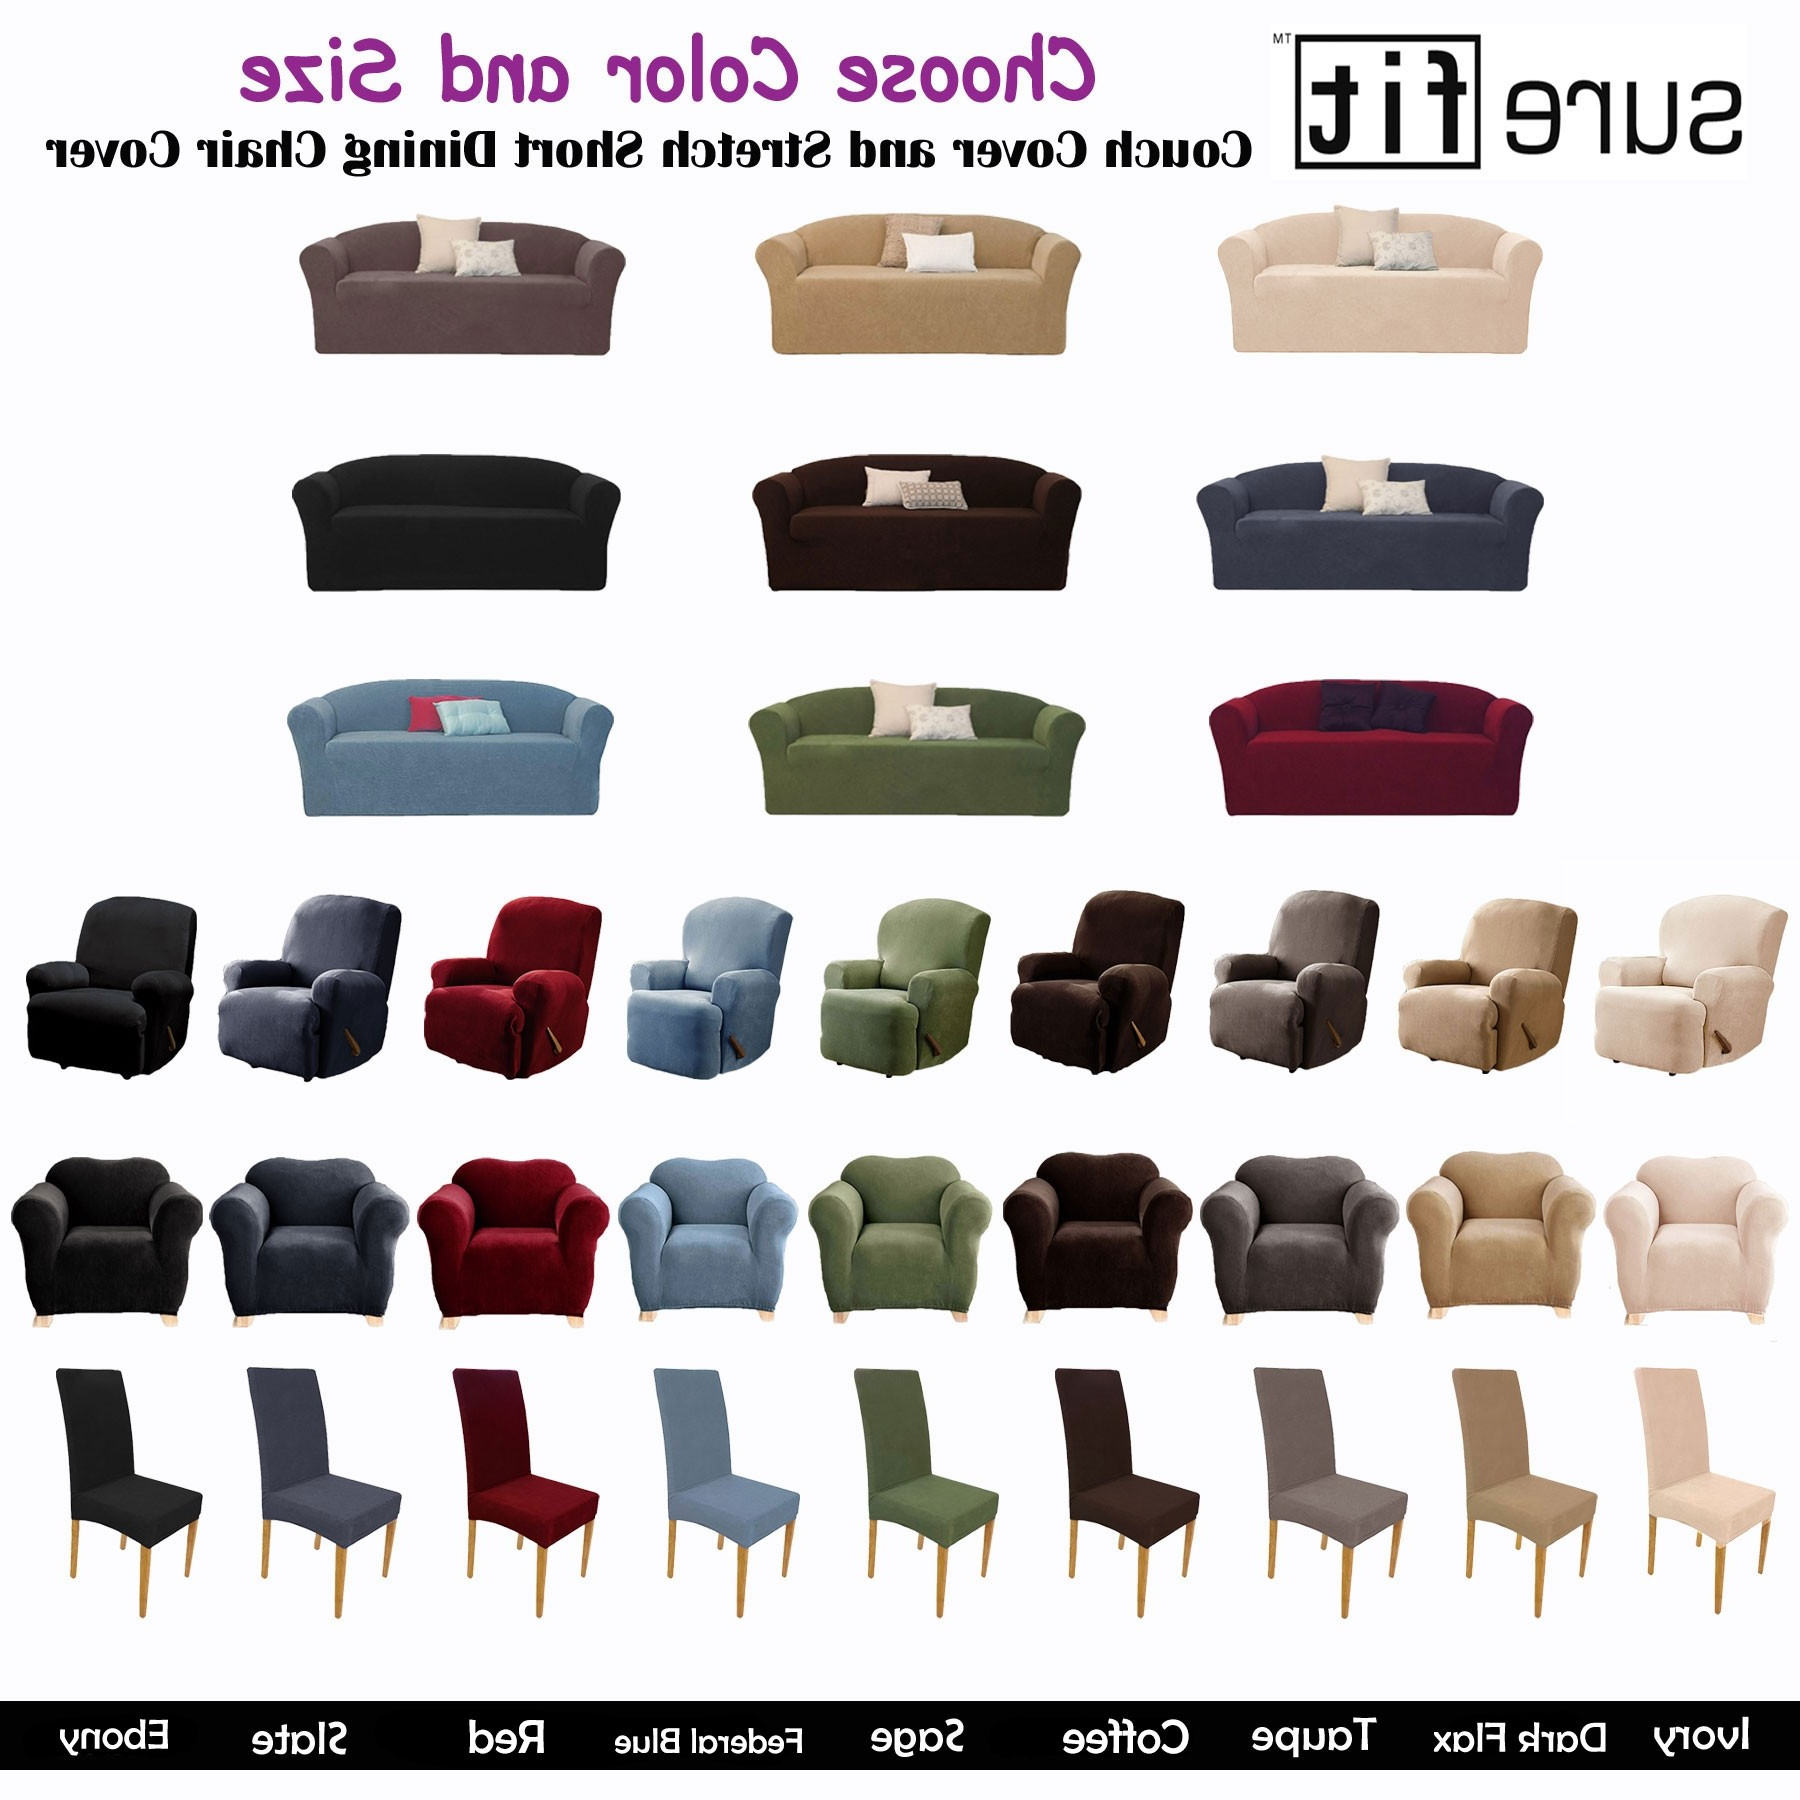 Stretch Sofa Slipcovers Australia At Regarding Sofa And Chair Slipcovers (View 3 of 20)